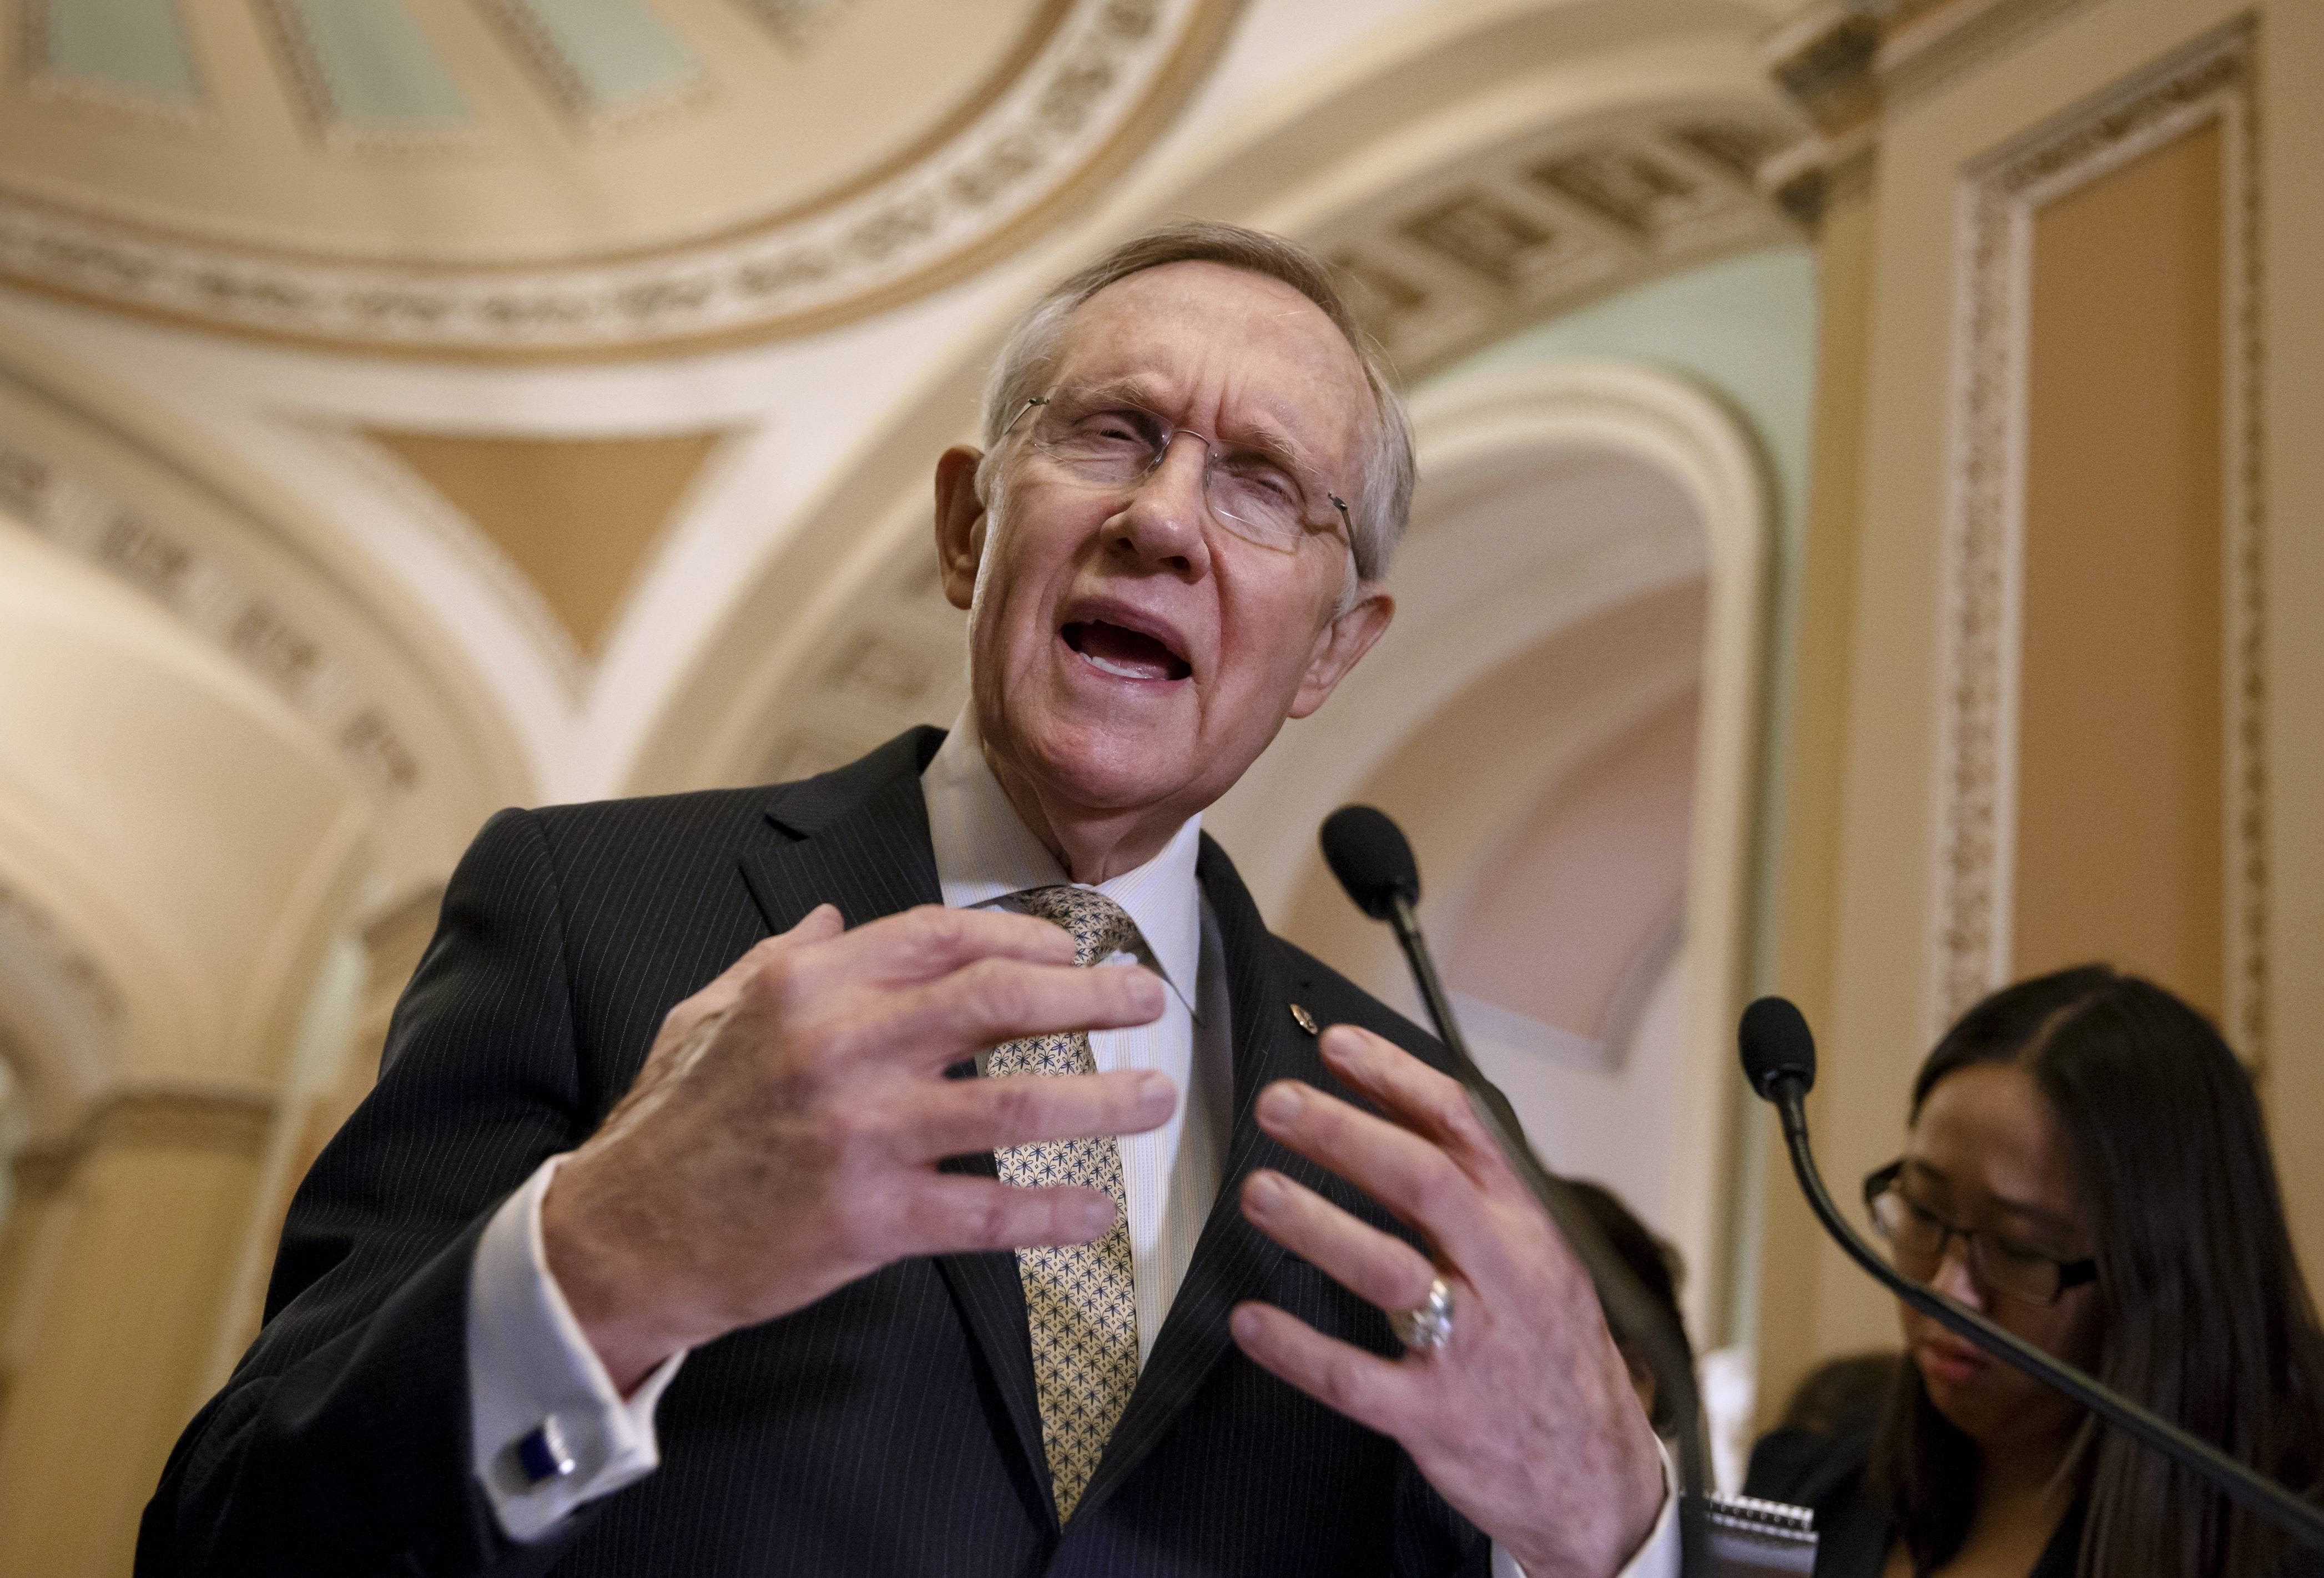 The Senate is on track to approve sanctions against Russia and aid for Ukraine after Democrats withdrew a provision that was blocking Congress from issuing a sharp response to Russian President Vladimir Putin's military intervention in Crimea.